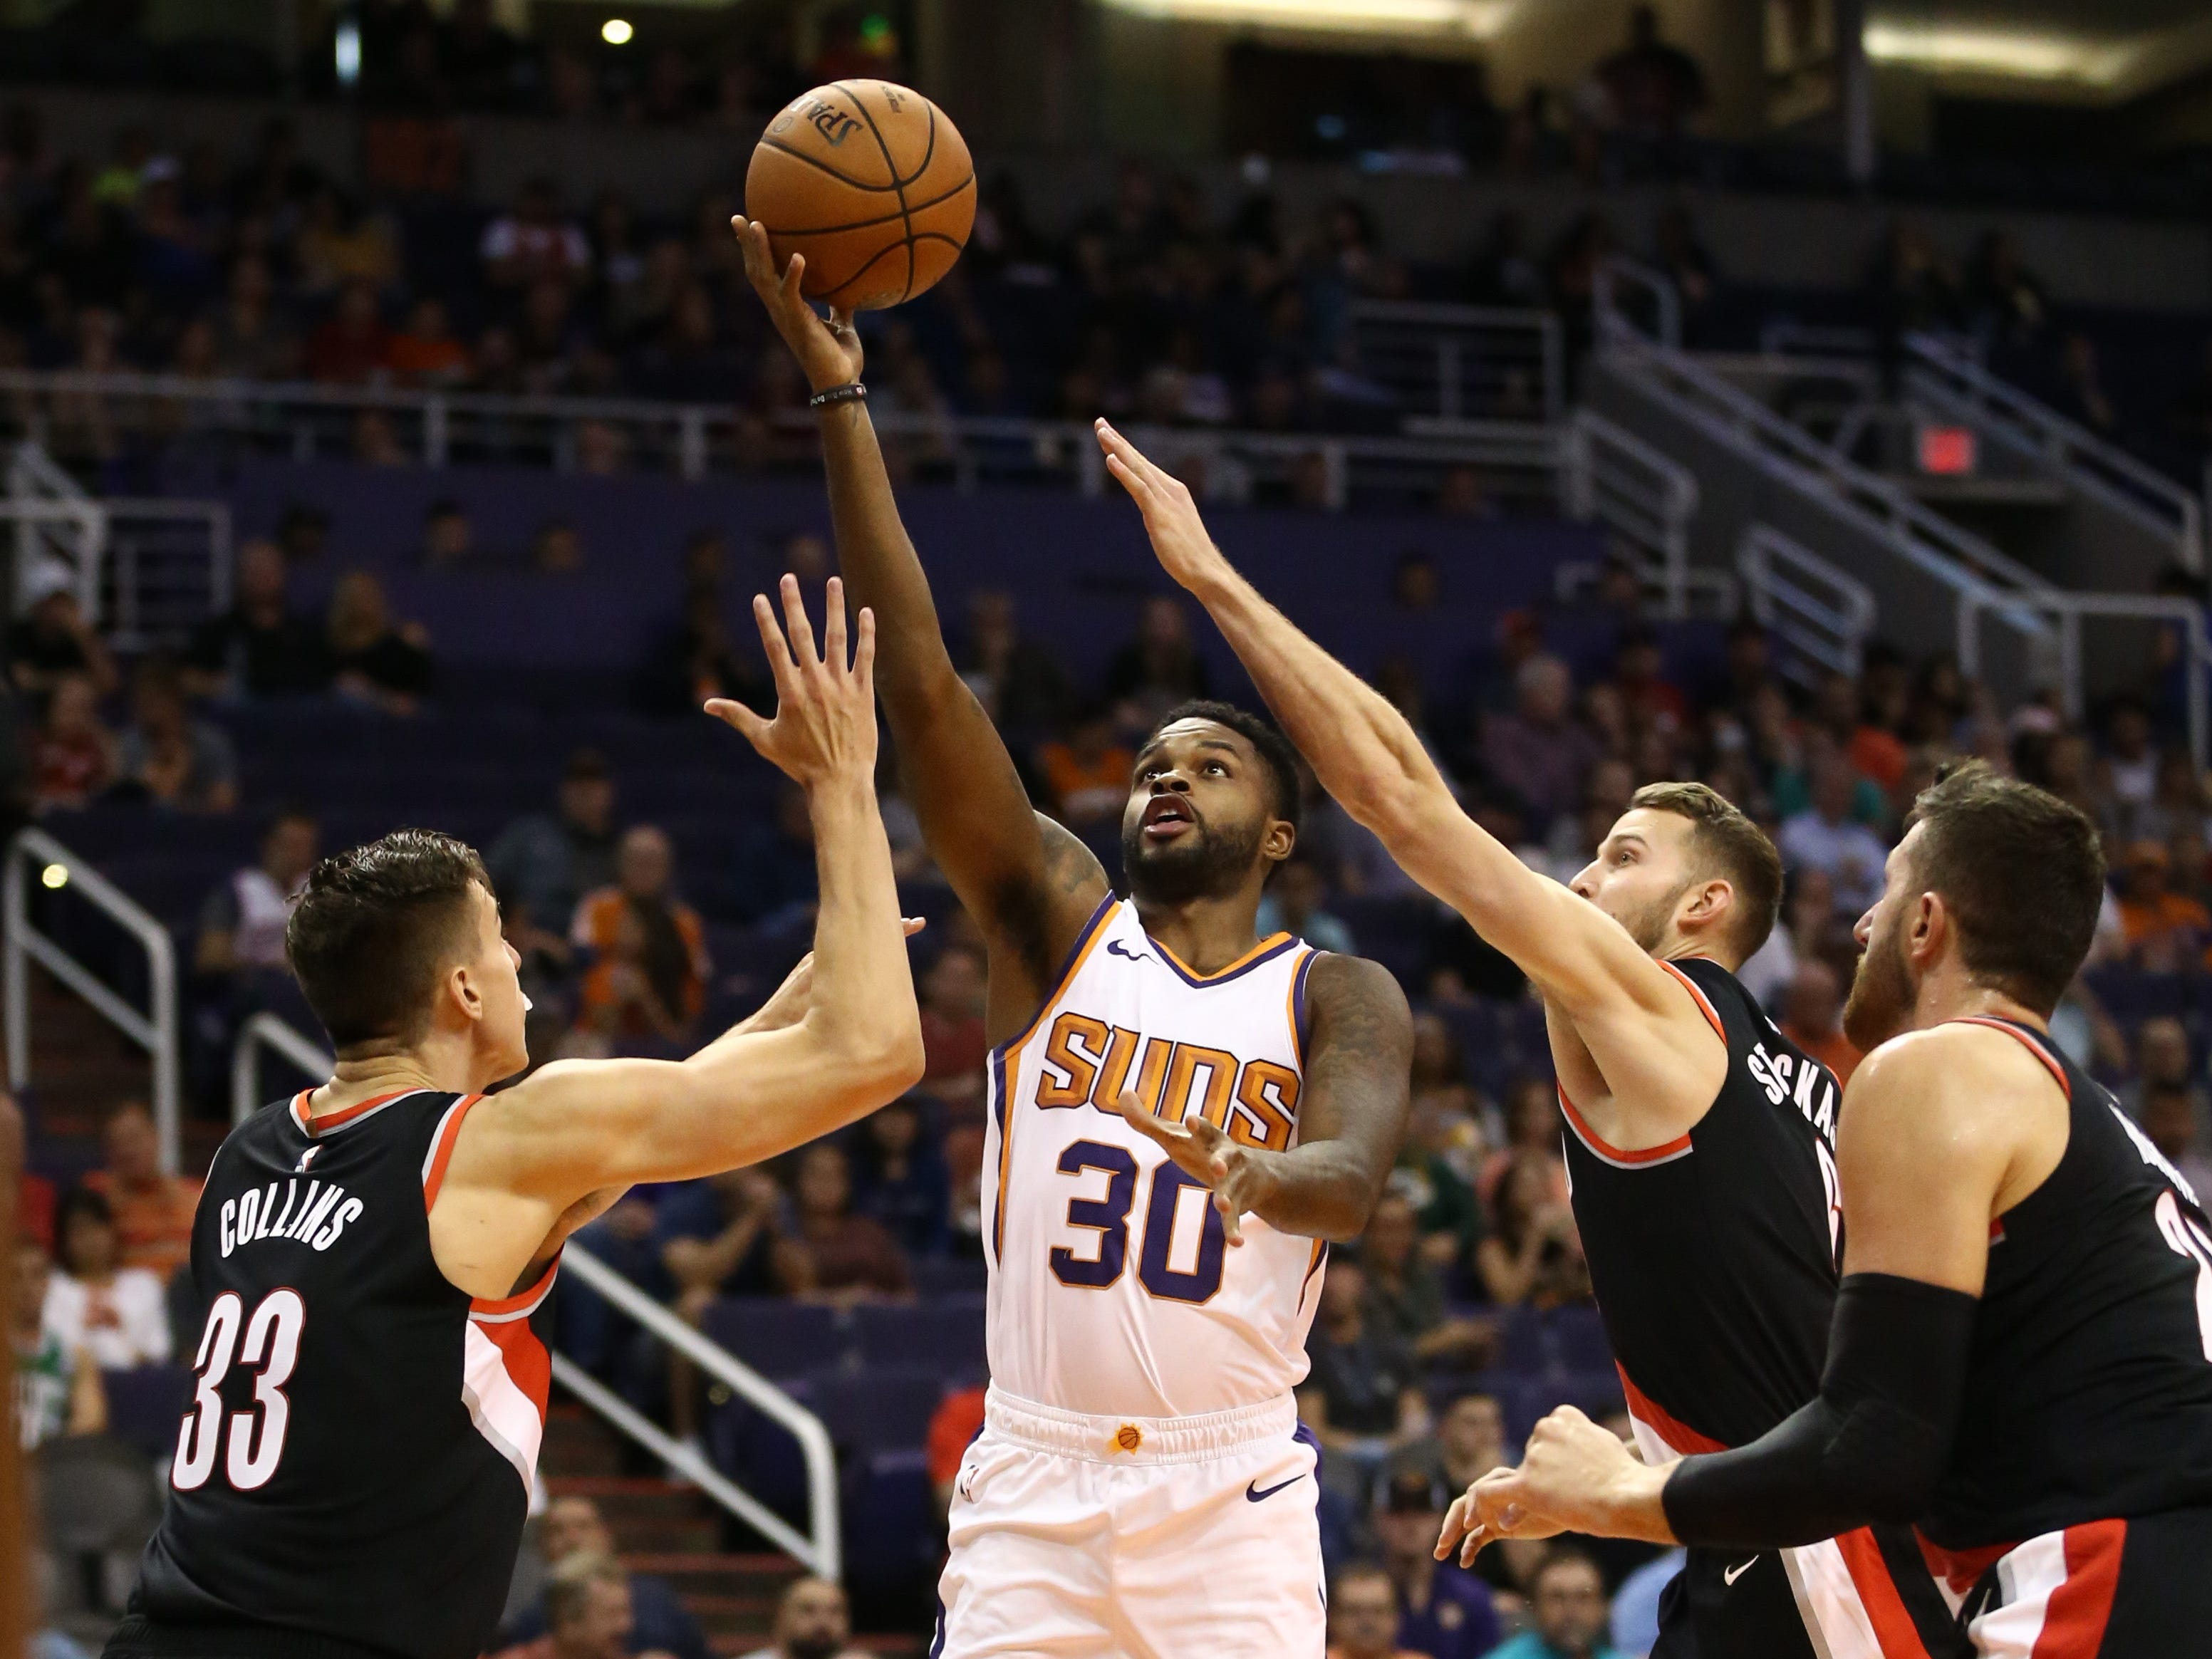 Phoenix Suns Troy Daniels drives to the basket against the Portland Trail Blazers during a preseason game at Talking Stick Resort Arena on Oct. 5, 2018, in Phoenix, Ariz.